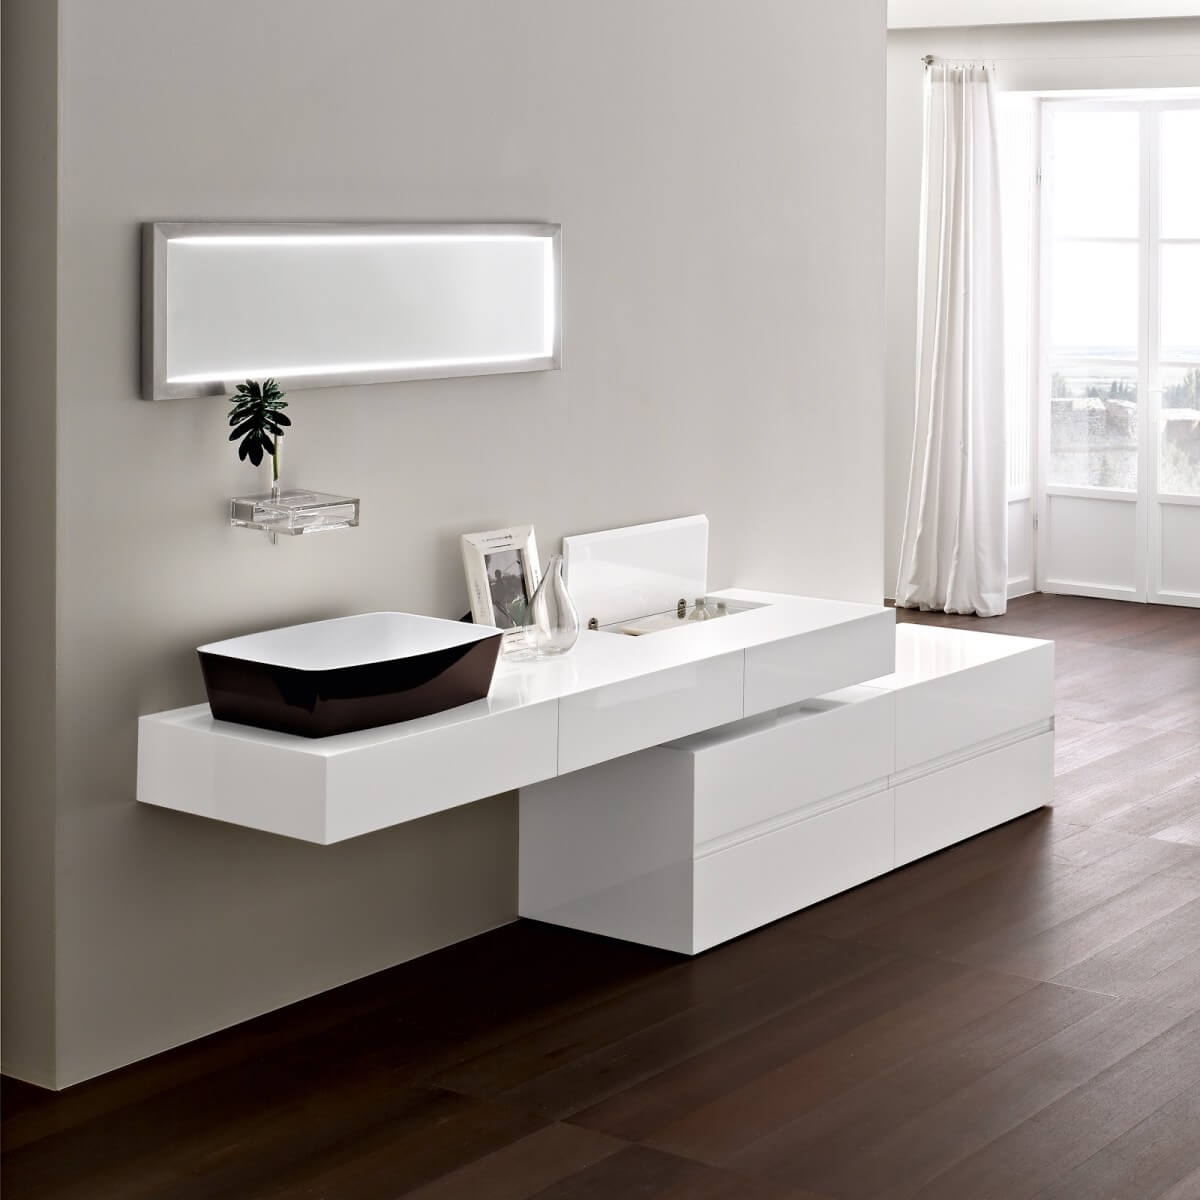 Ultra Modern Bathroom Designs - Update the Decor of Your Bathroom ...